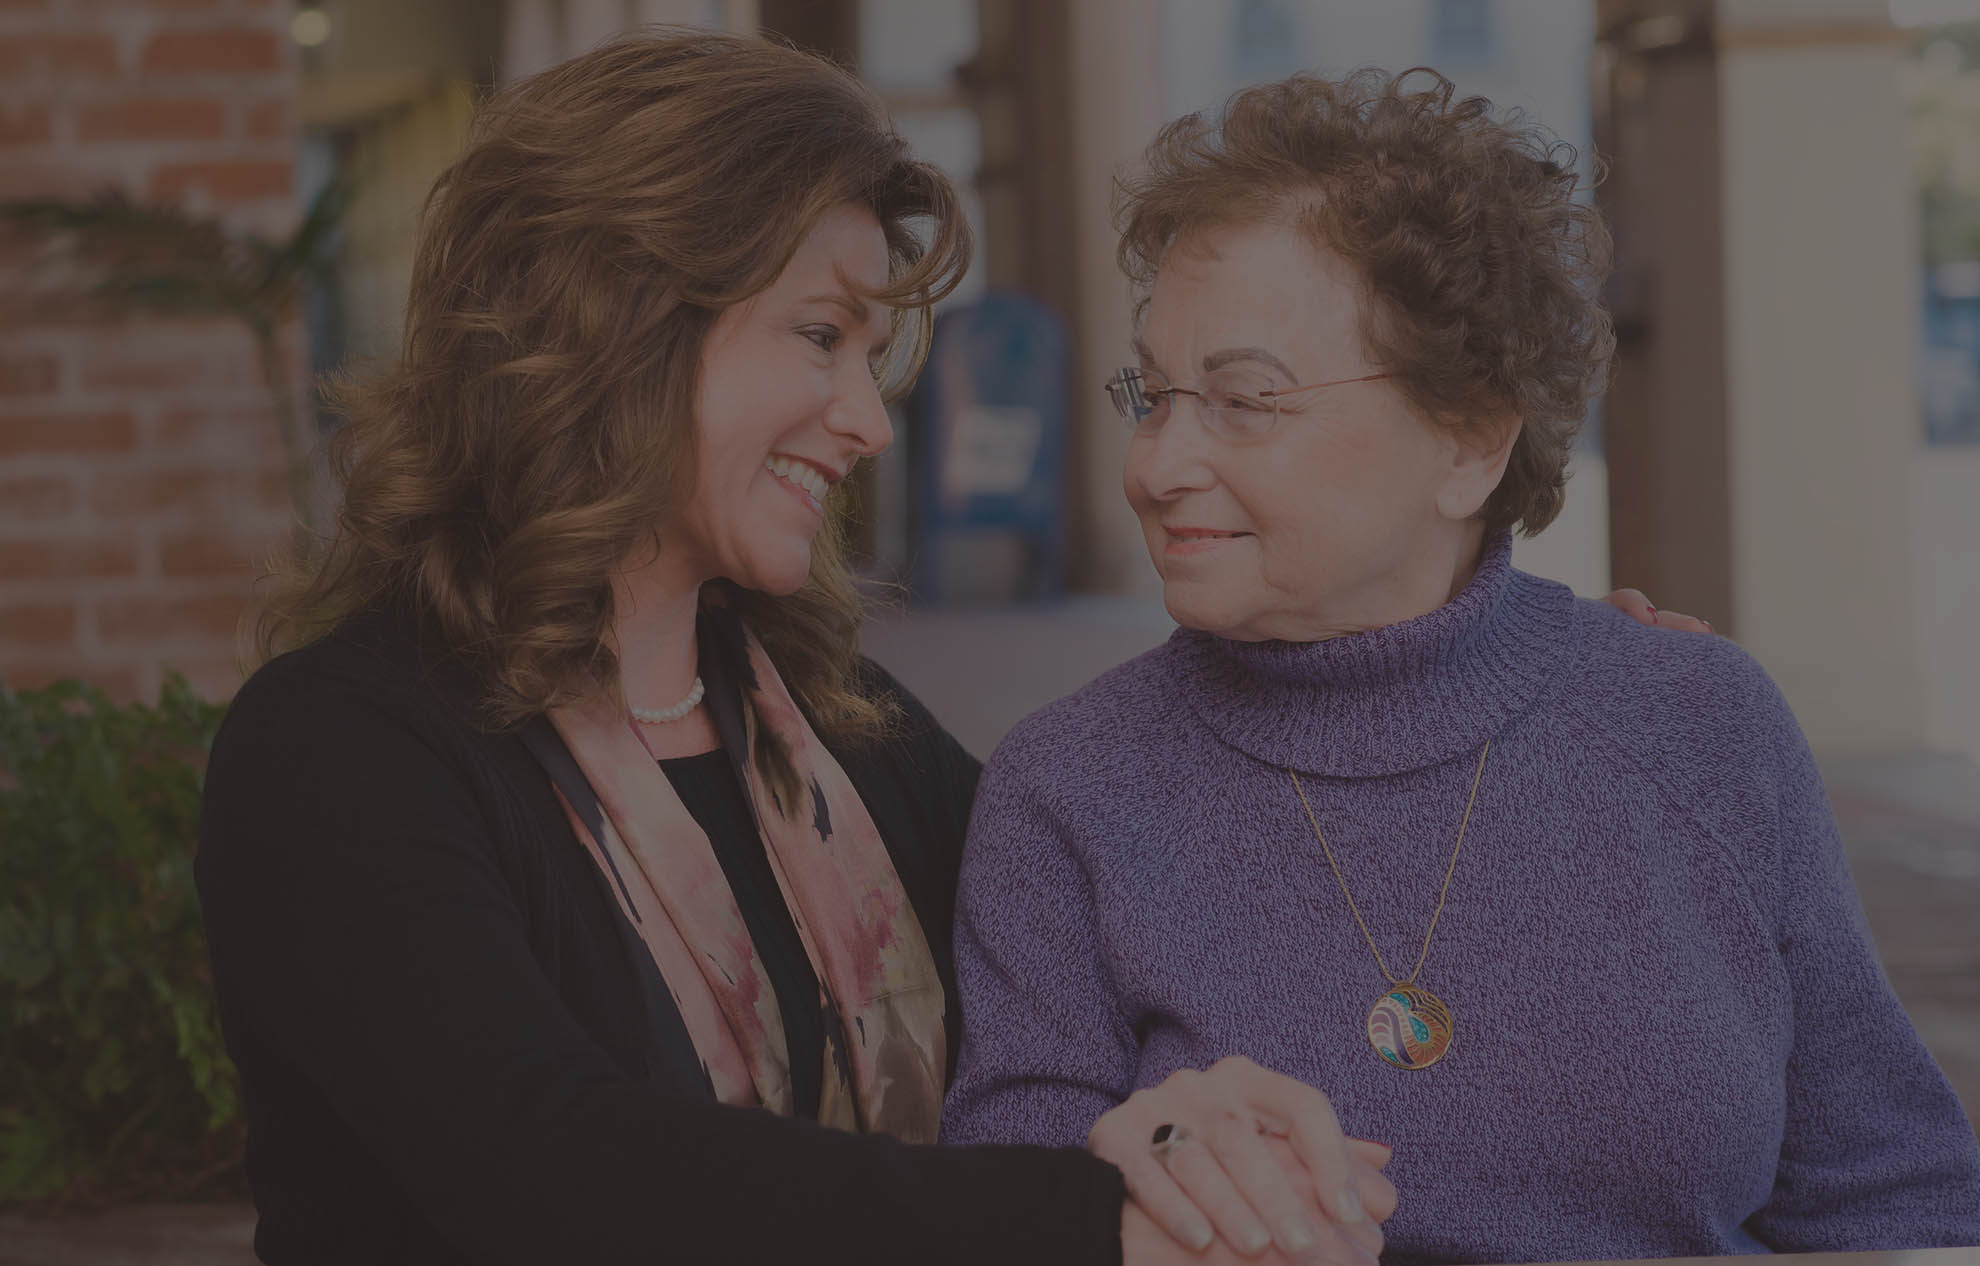 Do you need help with a loved one transitioning through aging care?